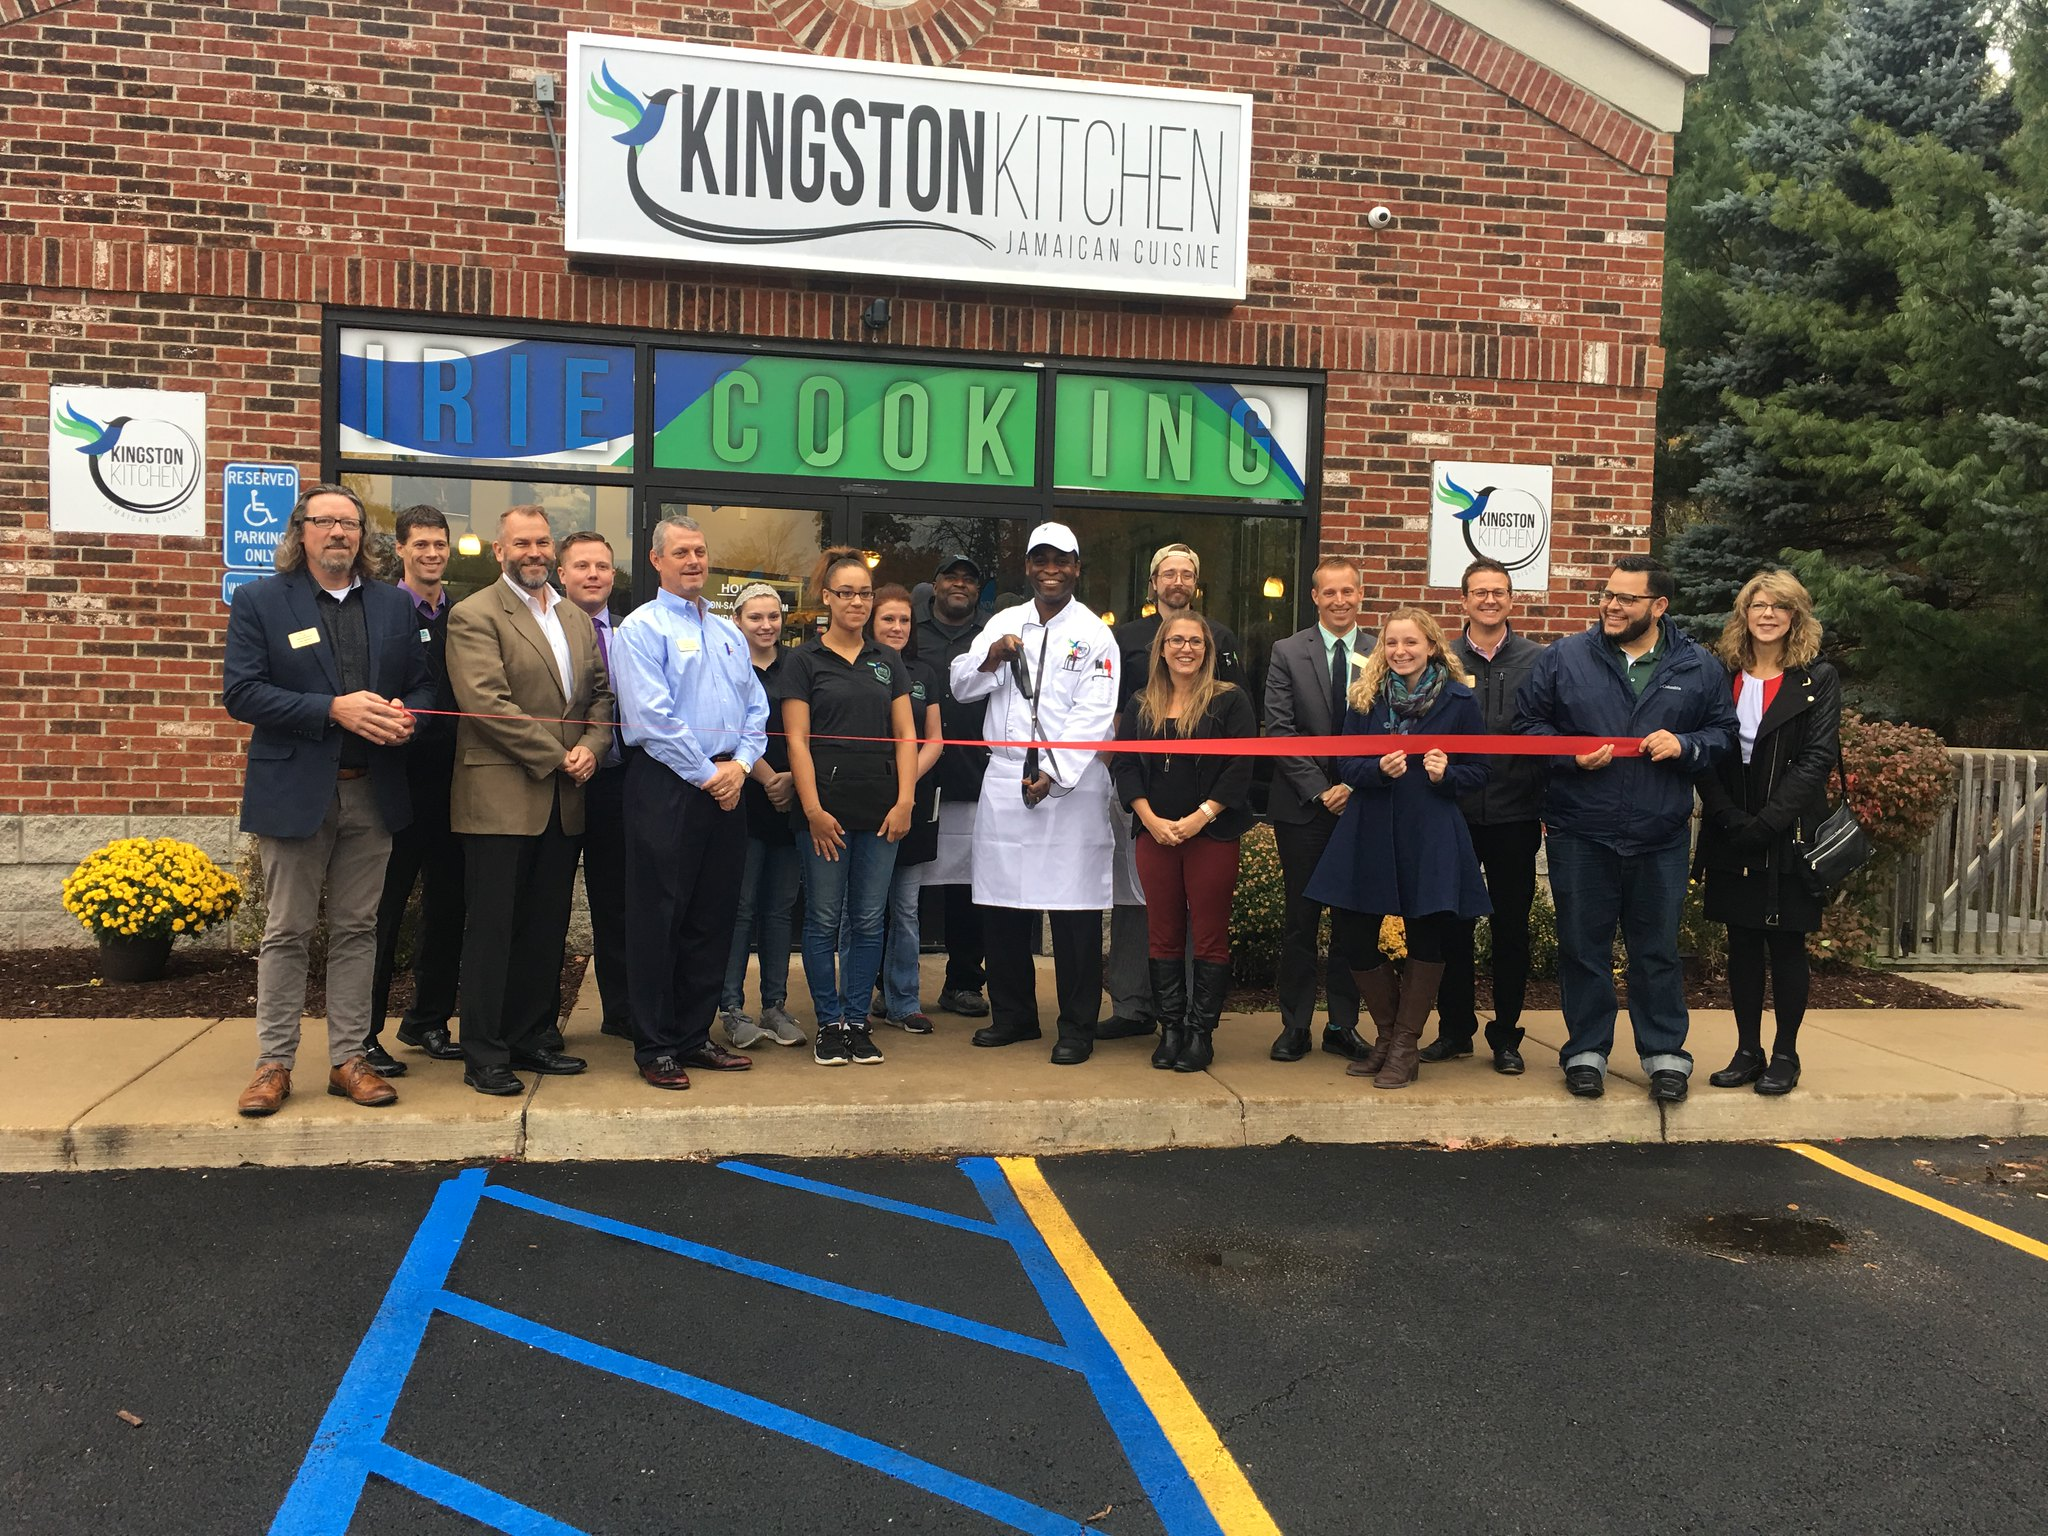 Kingston Kitchen Holds Ribbon Cutting Ceremony